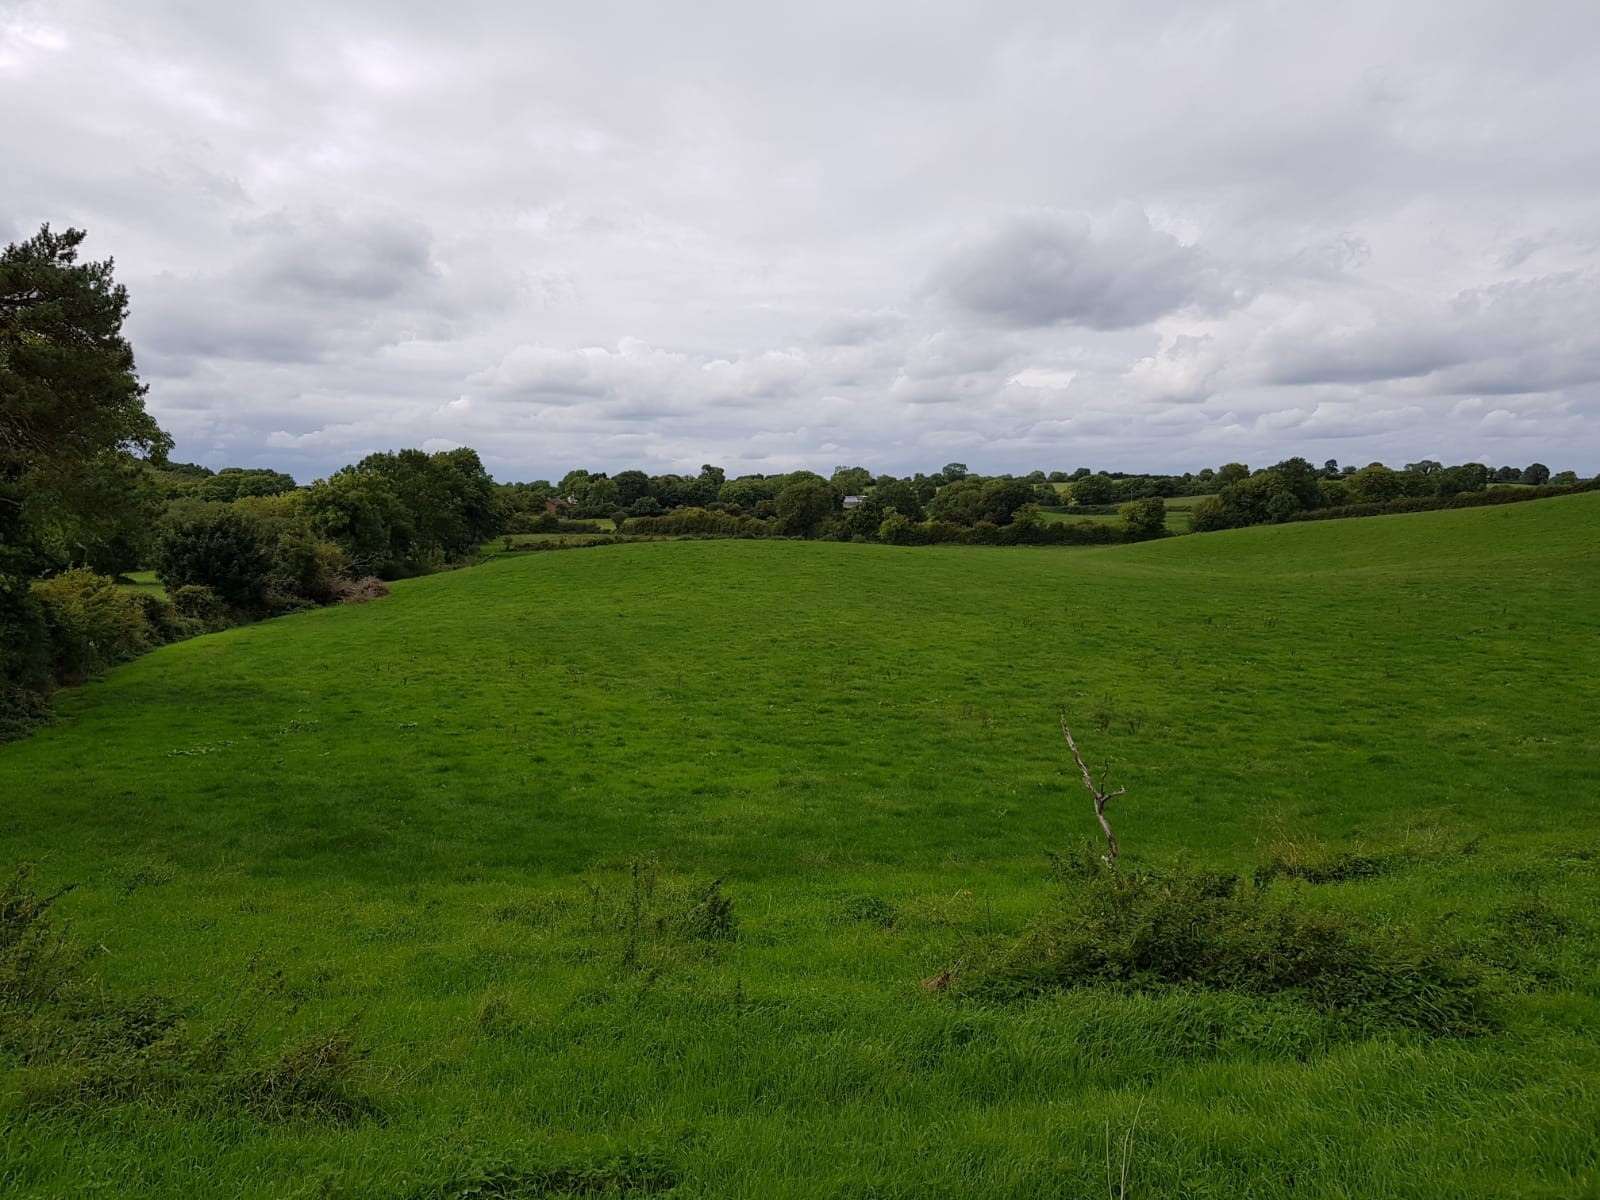 43.28 Acres (or thereabouts) of Quality, Agricultural Lands Adjacent to No 171 Clay Road